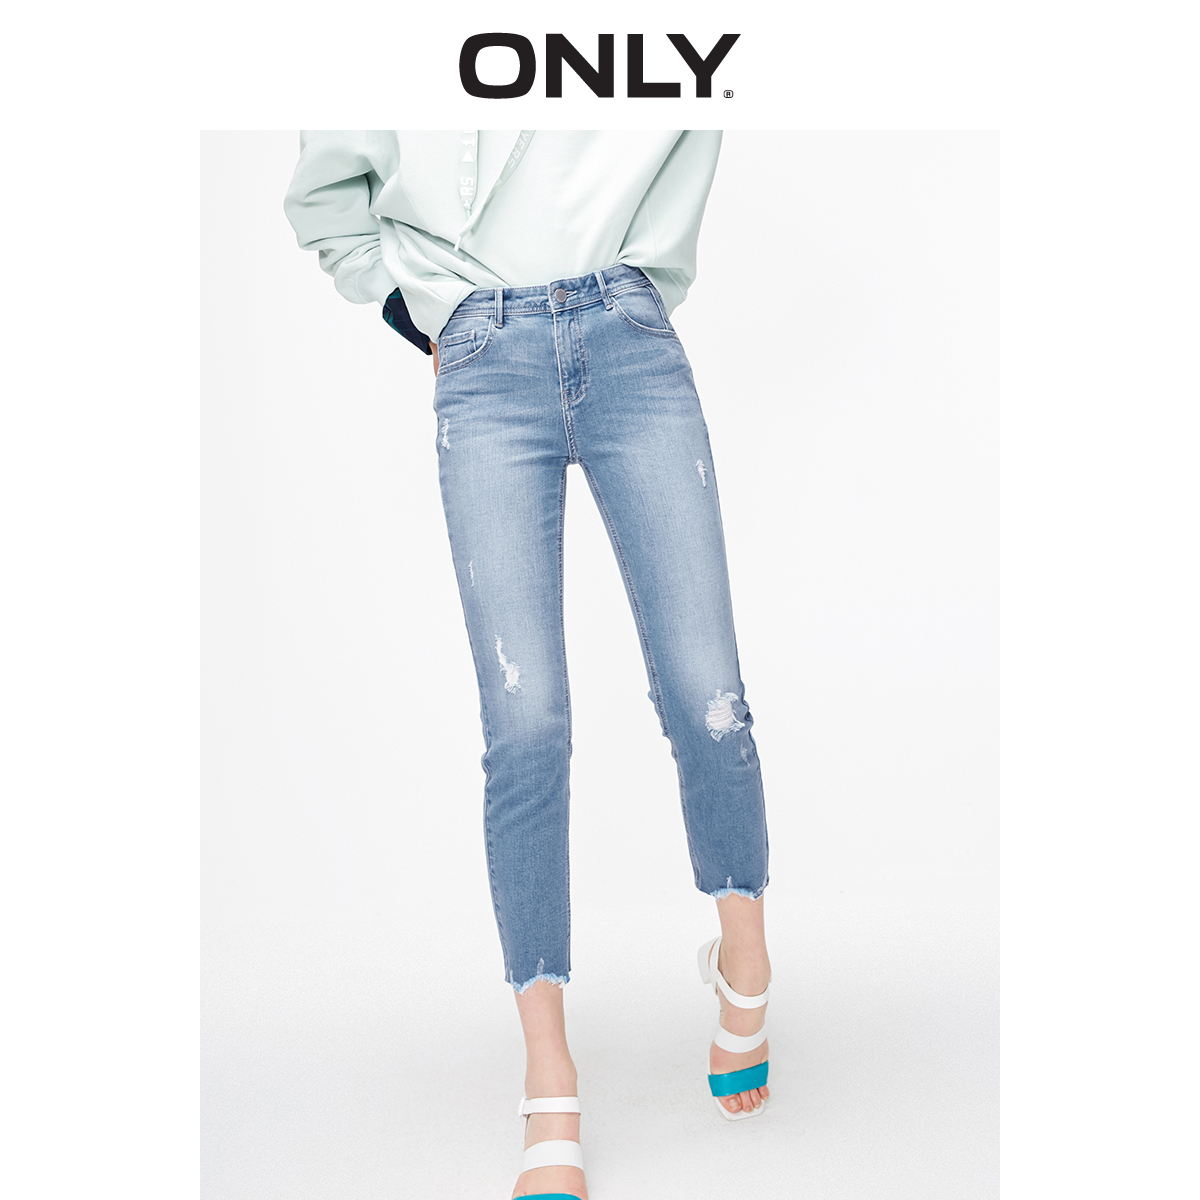 ONLY  Women's Slim Fit Mid-rise Slightly Flared Frayed Raw-edge Crop Jeans | 119149622